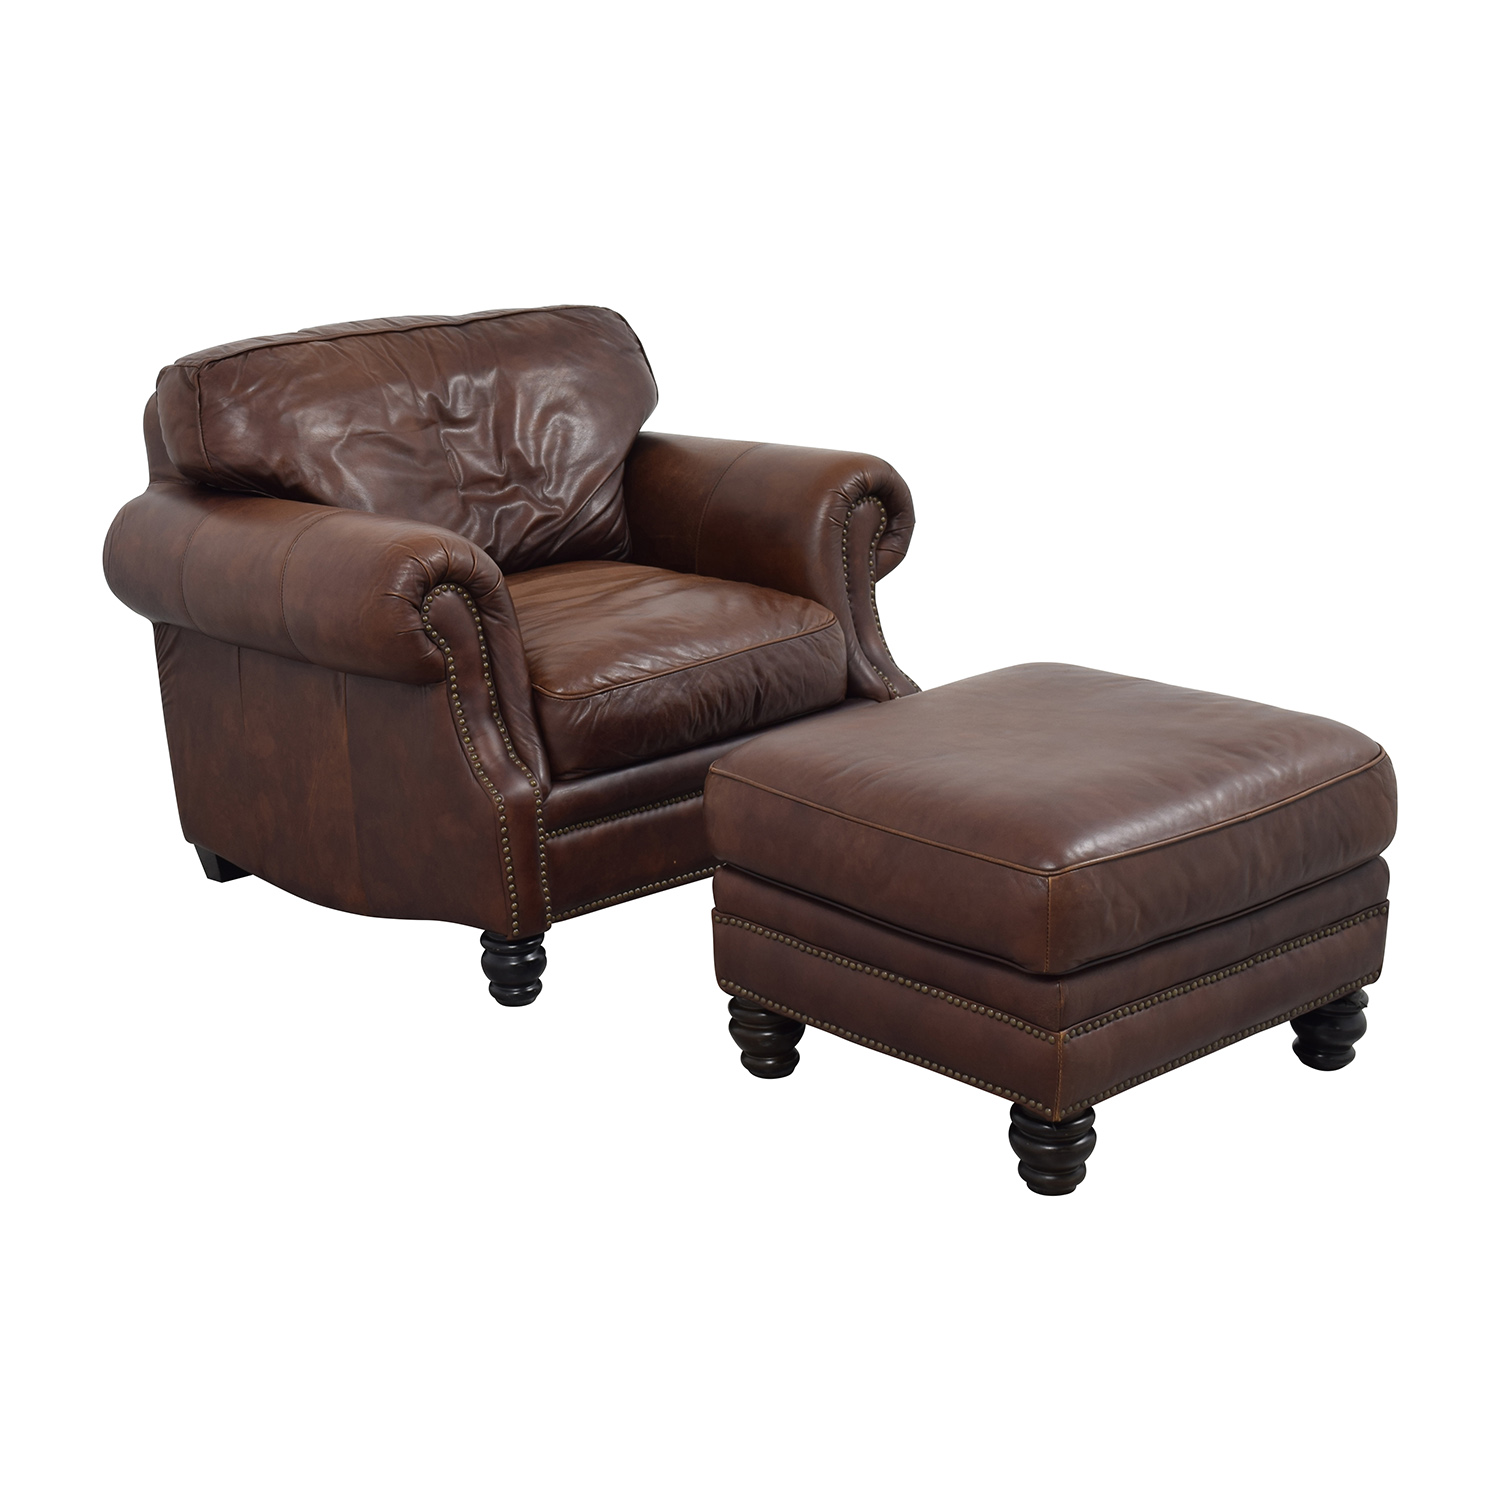 Leather studded recliner grayson furniture collection for Studded leather sofa